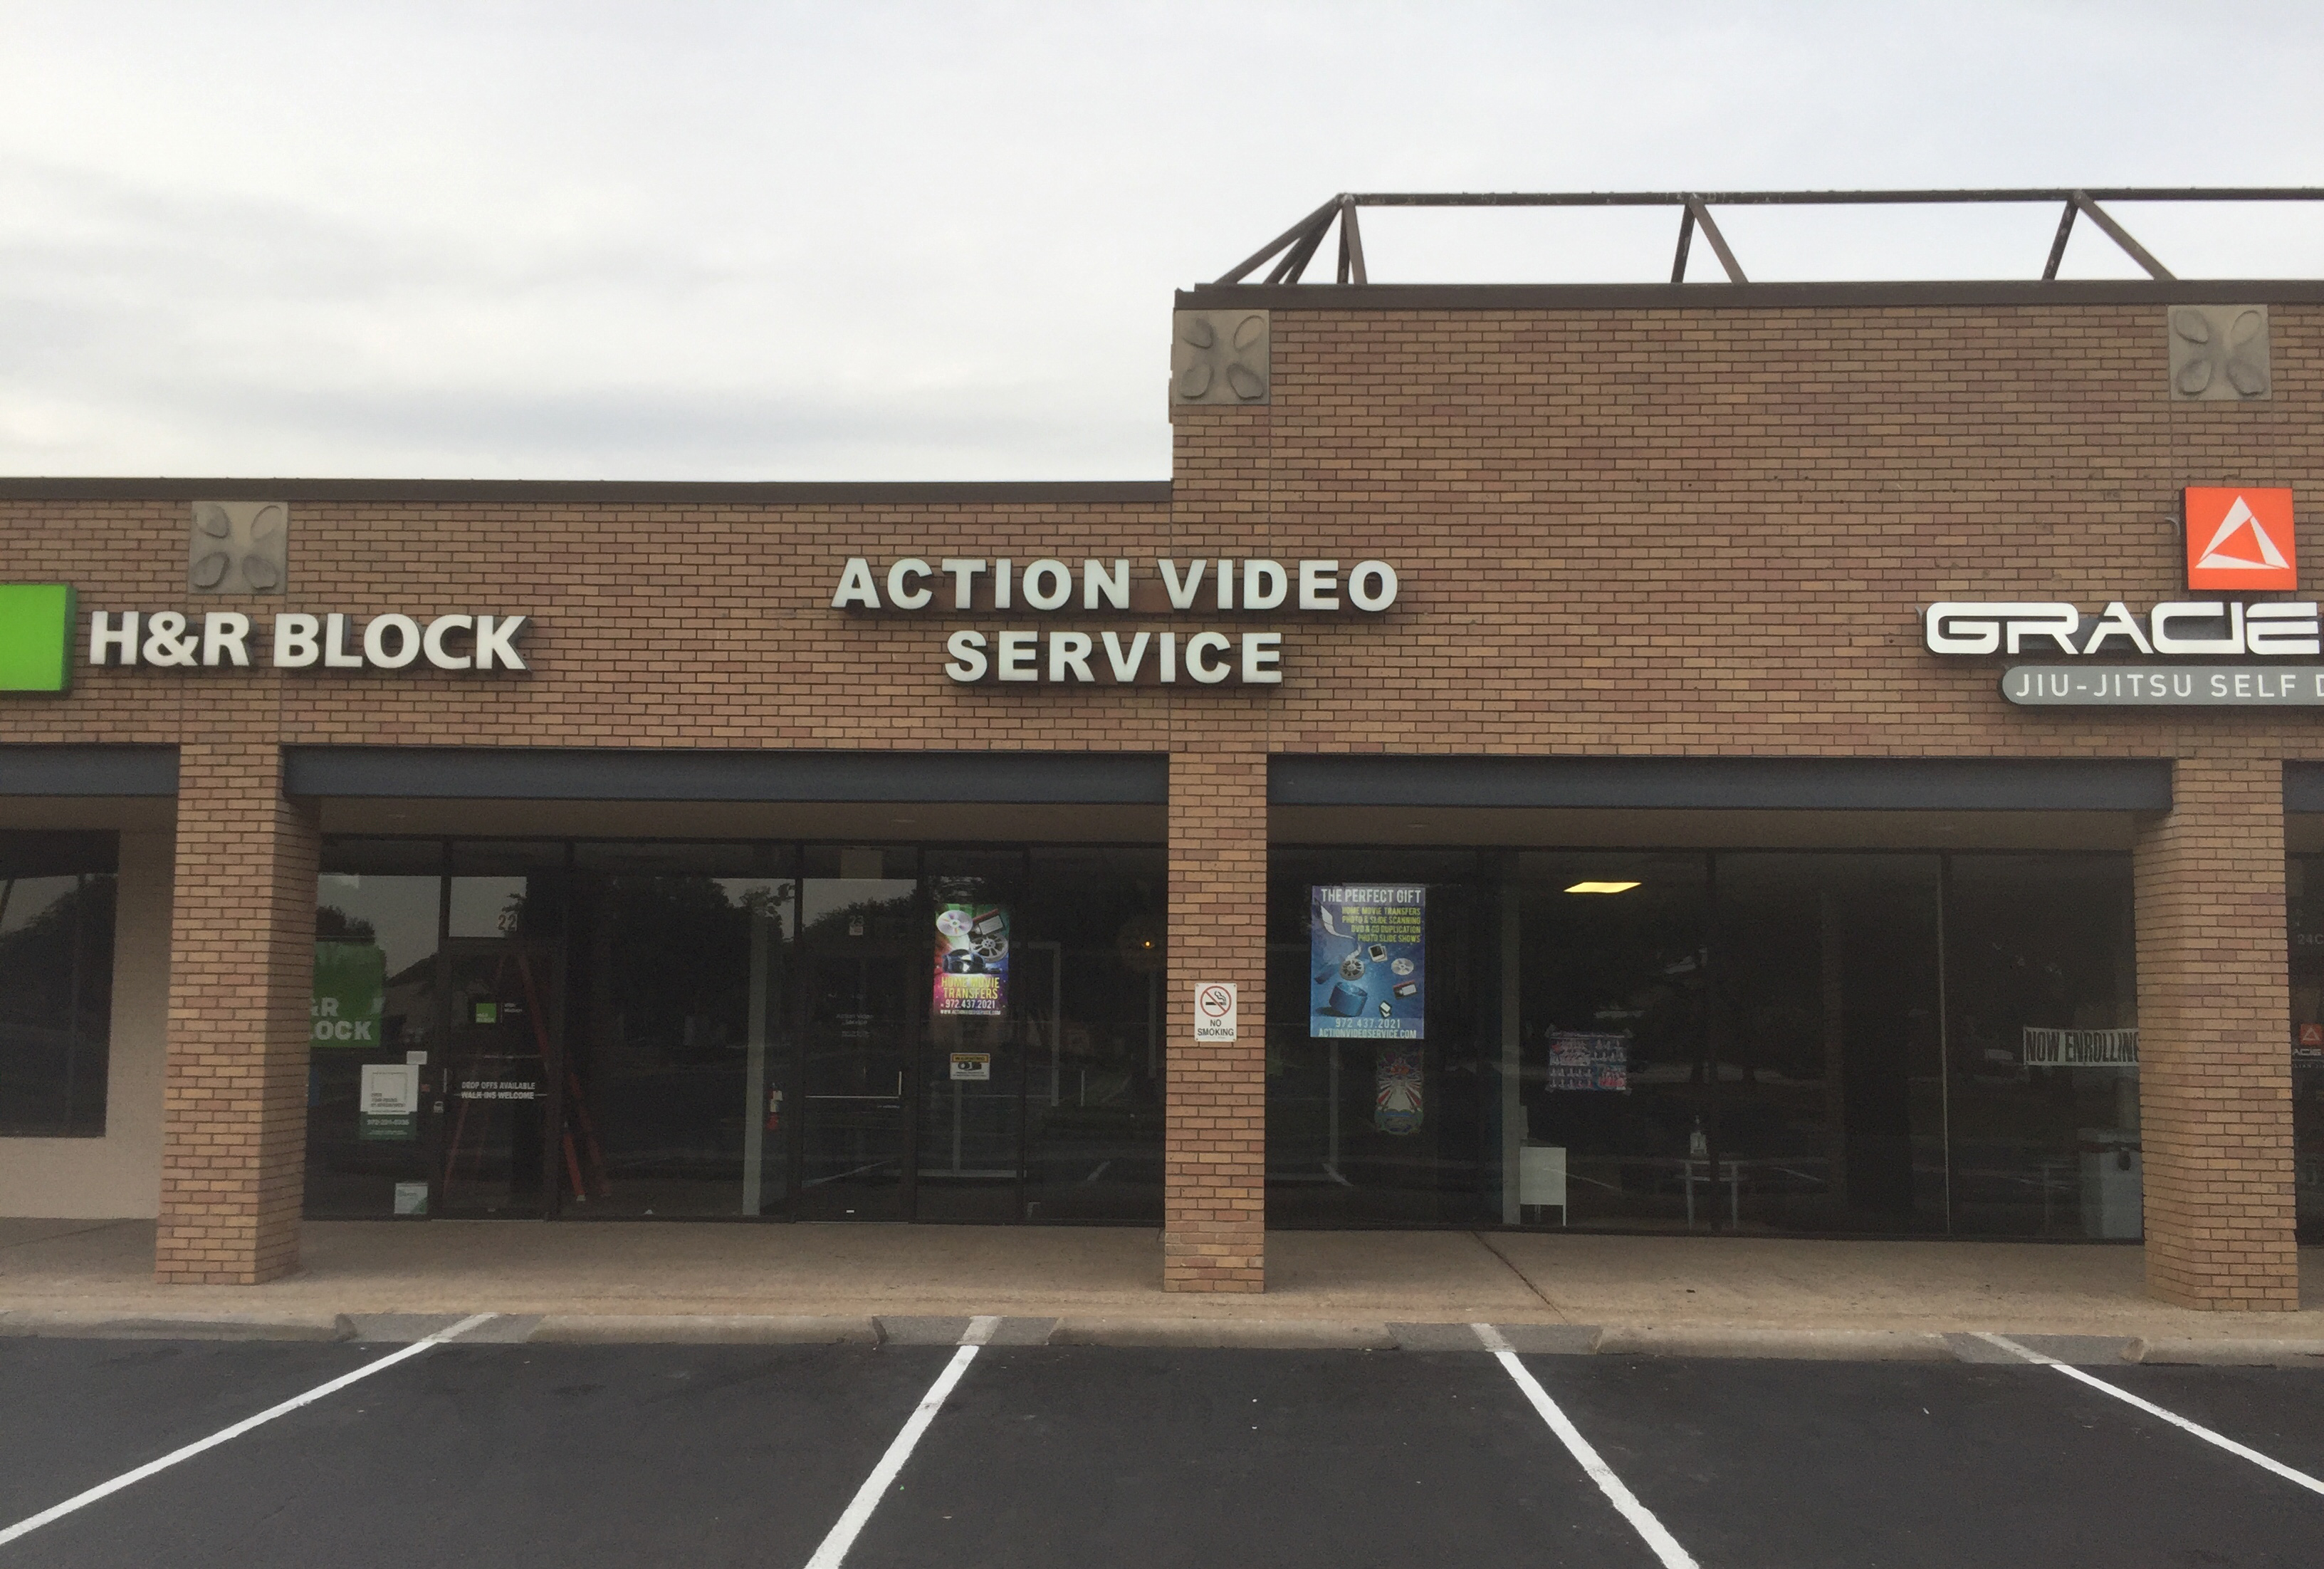 Action Video Service storefront